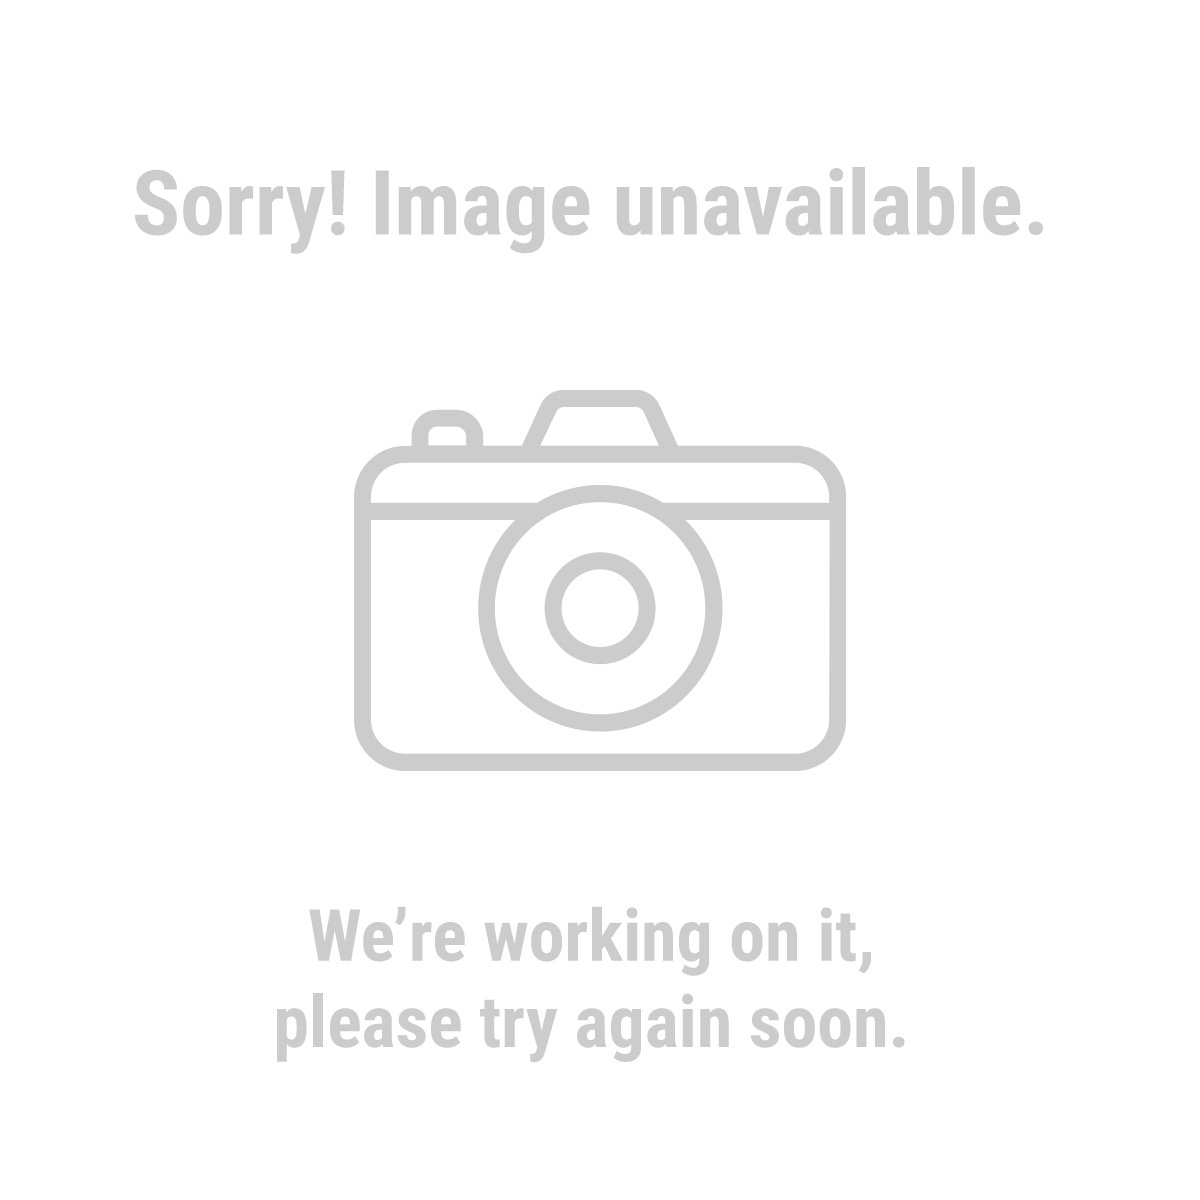 Western Safety 95537 Leather Mechanic's Gloves, Large